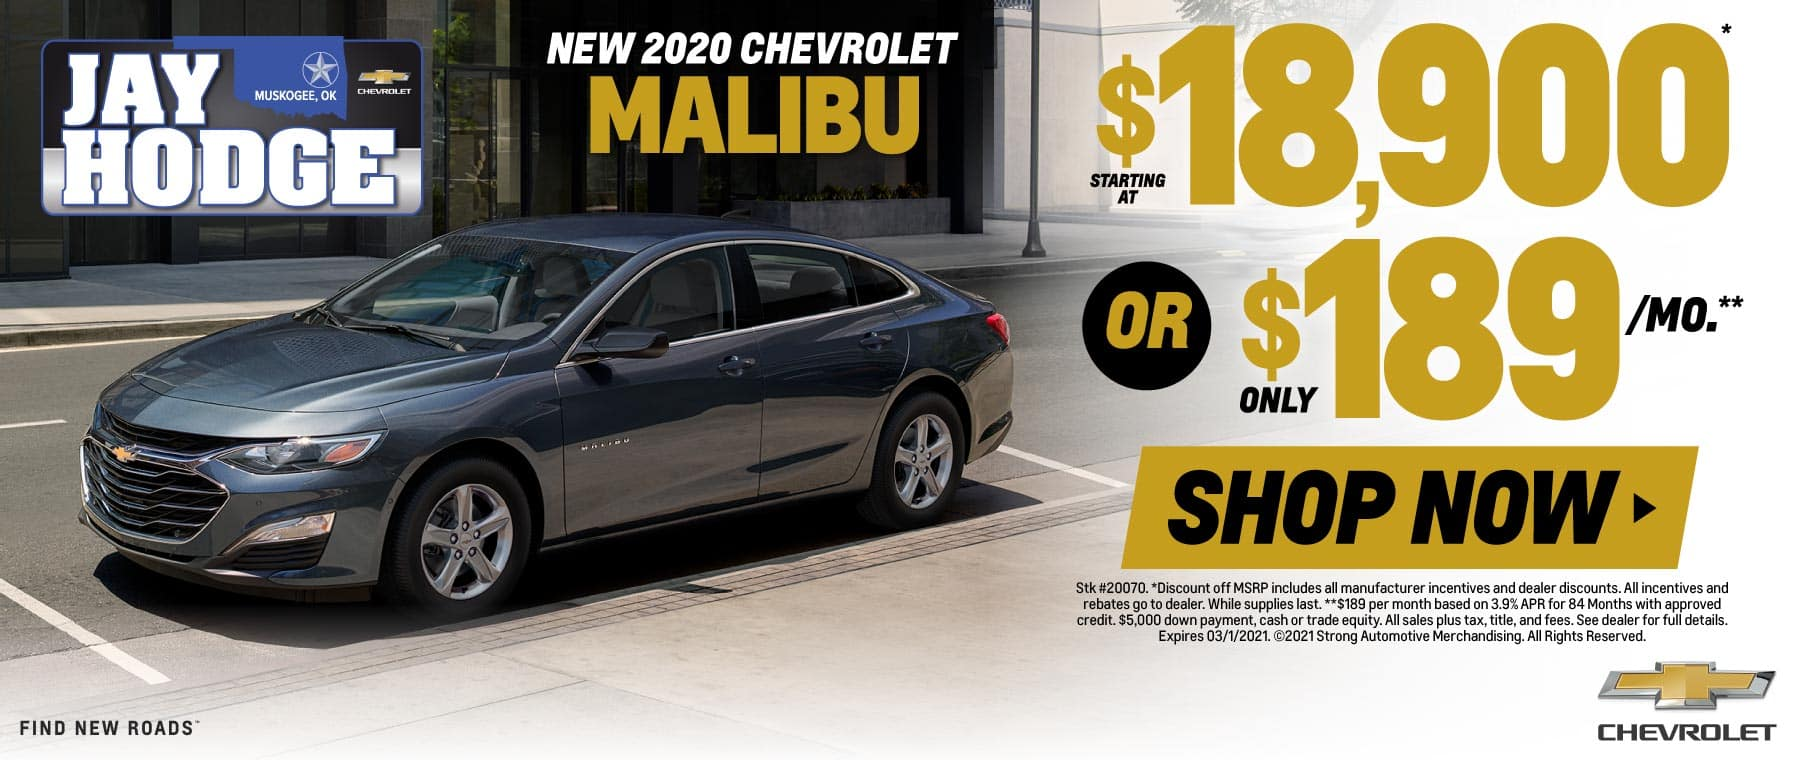 New 2020 Chevrolet Malibu - Starting at $18,900 or $189/mo - Shop Now